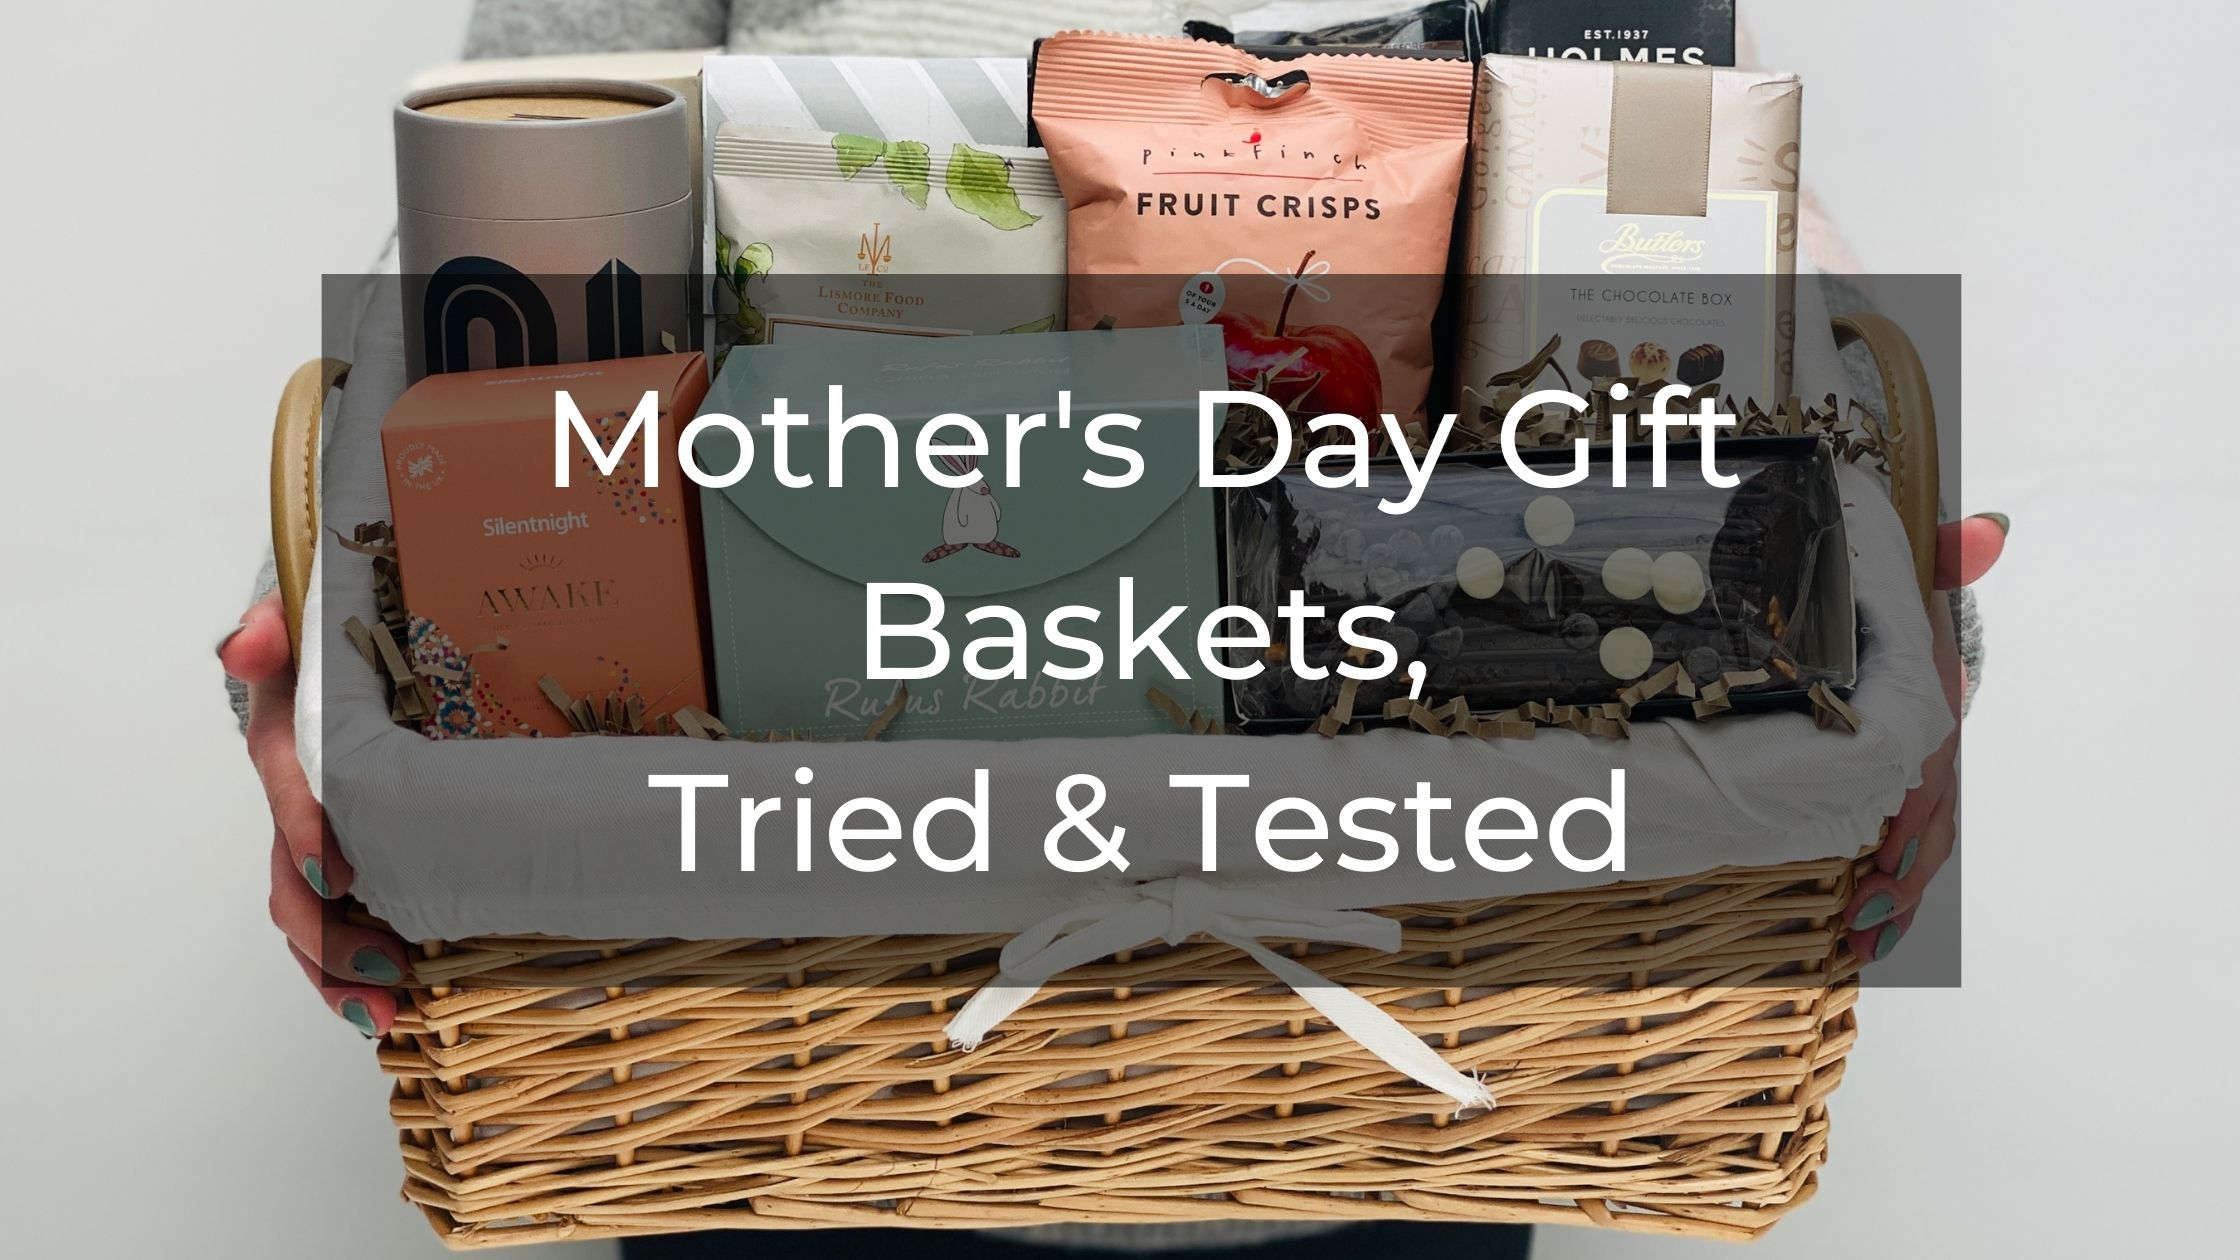 Mother's Day Gift Baskets - Tried & Tested